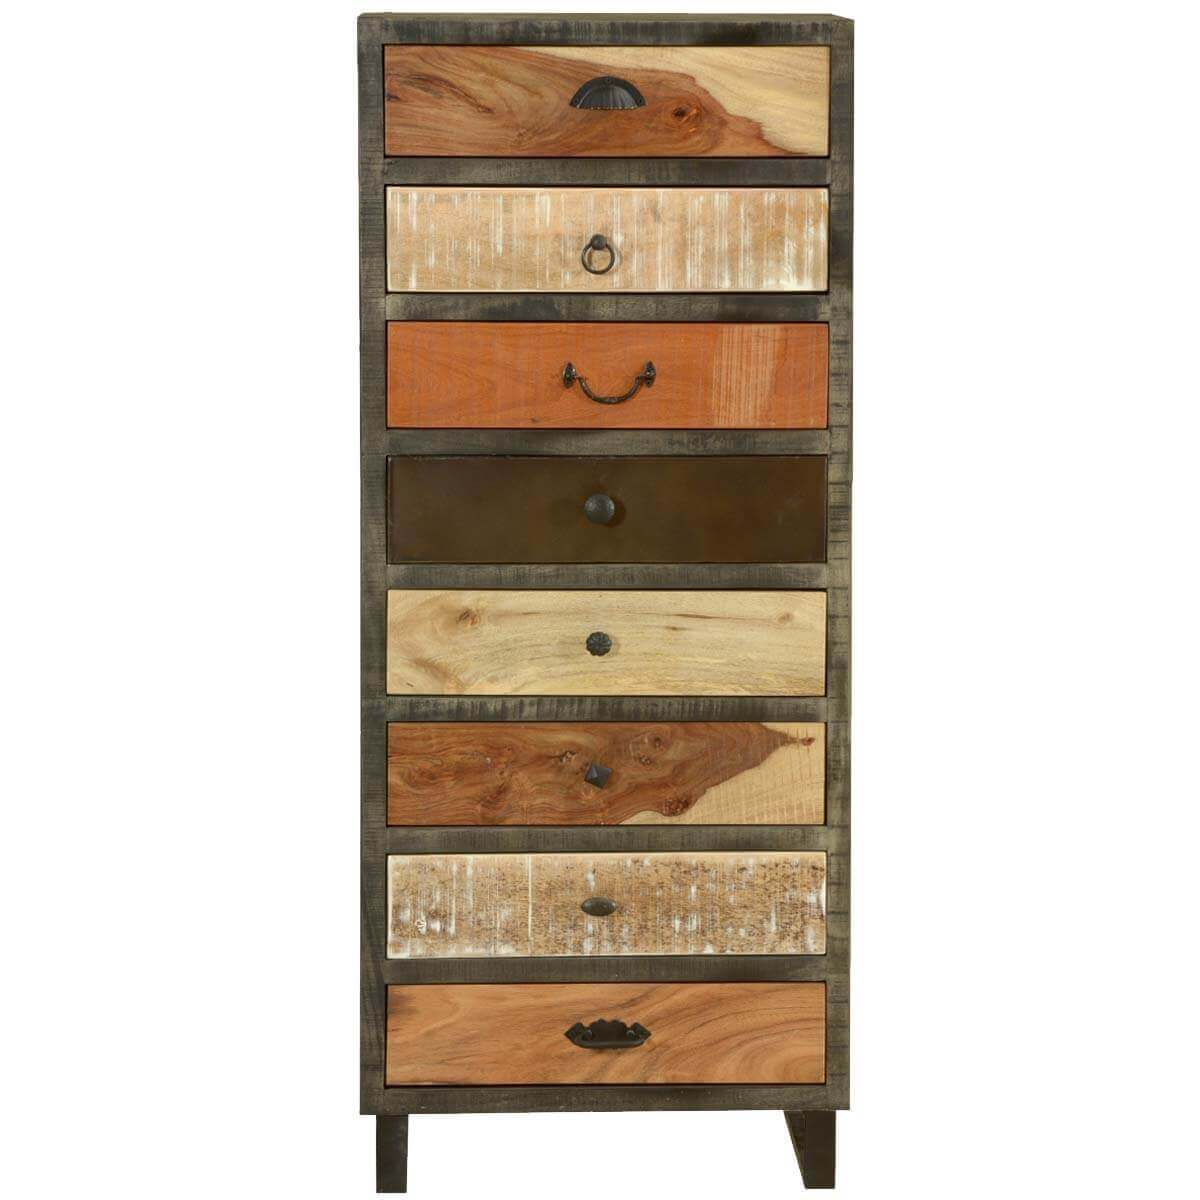 Marvelous photograph of  Wooden Patches Mango Wood & Iron 52 Chest of 8 Drawers Dresser with #B27F19 color and 1200x1200 pixels